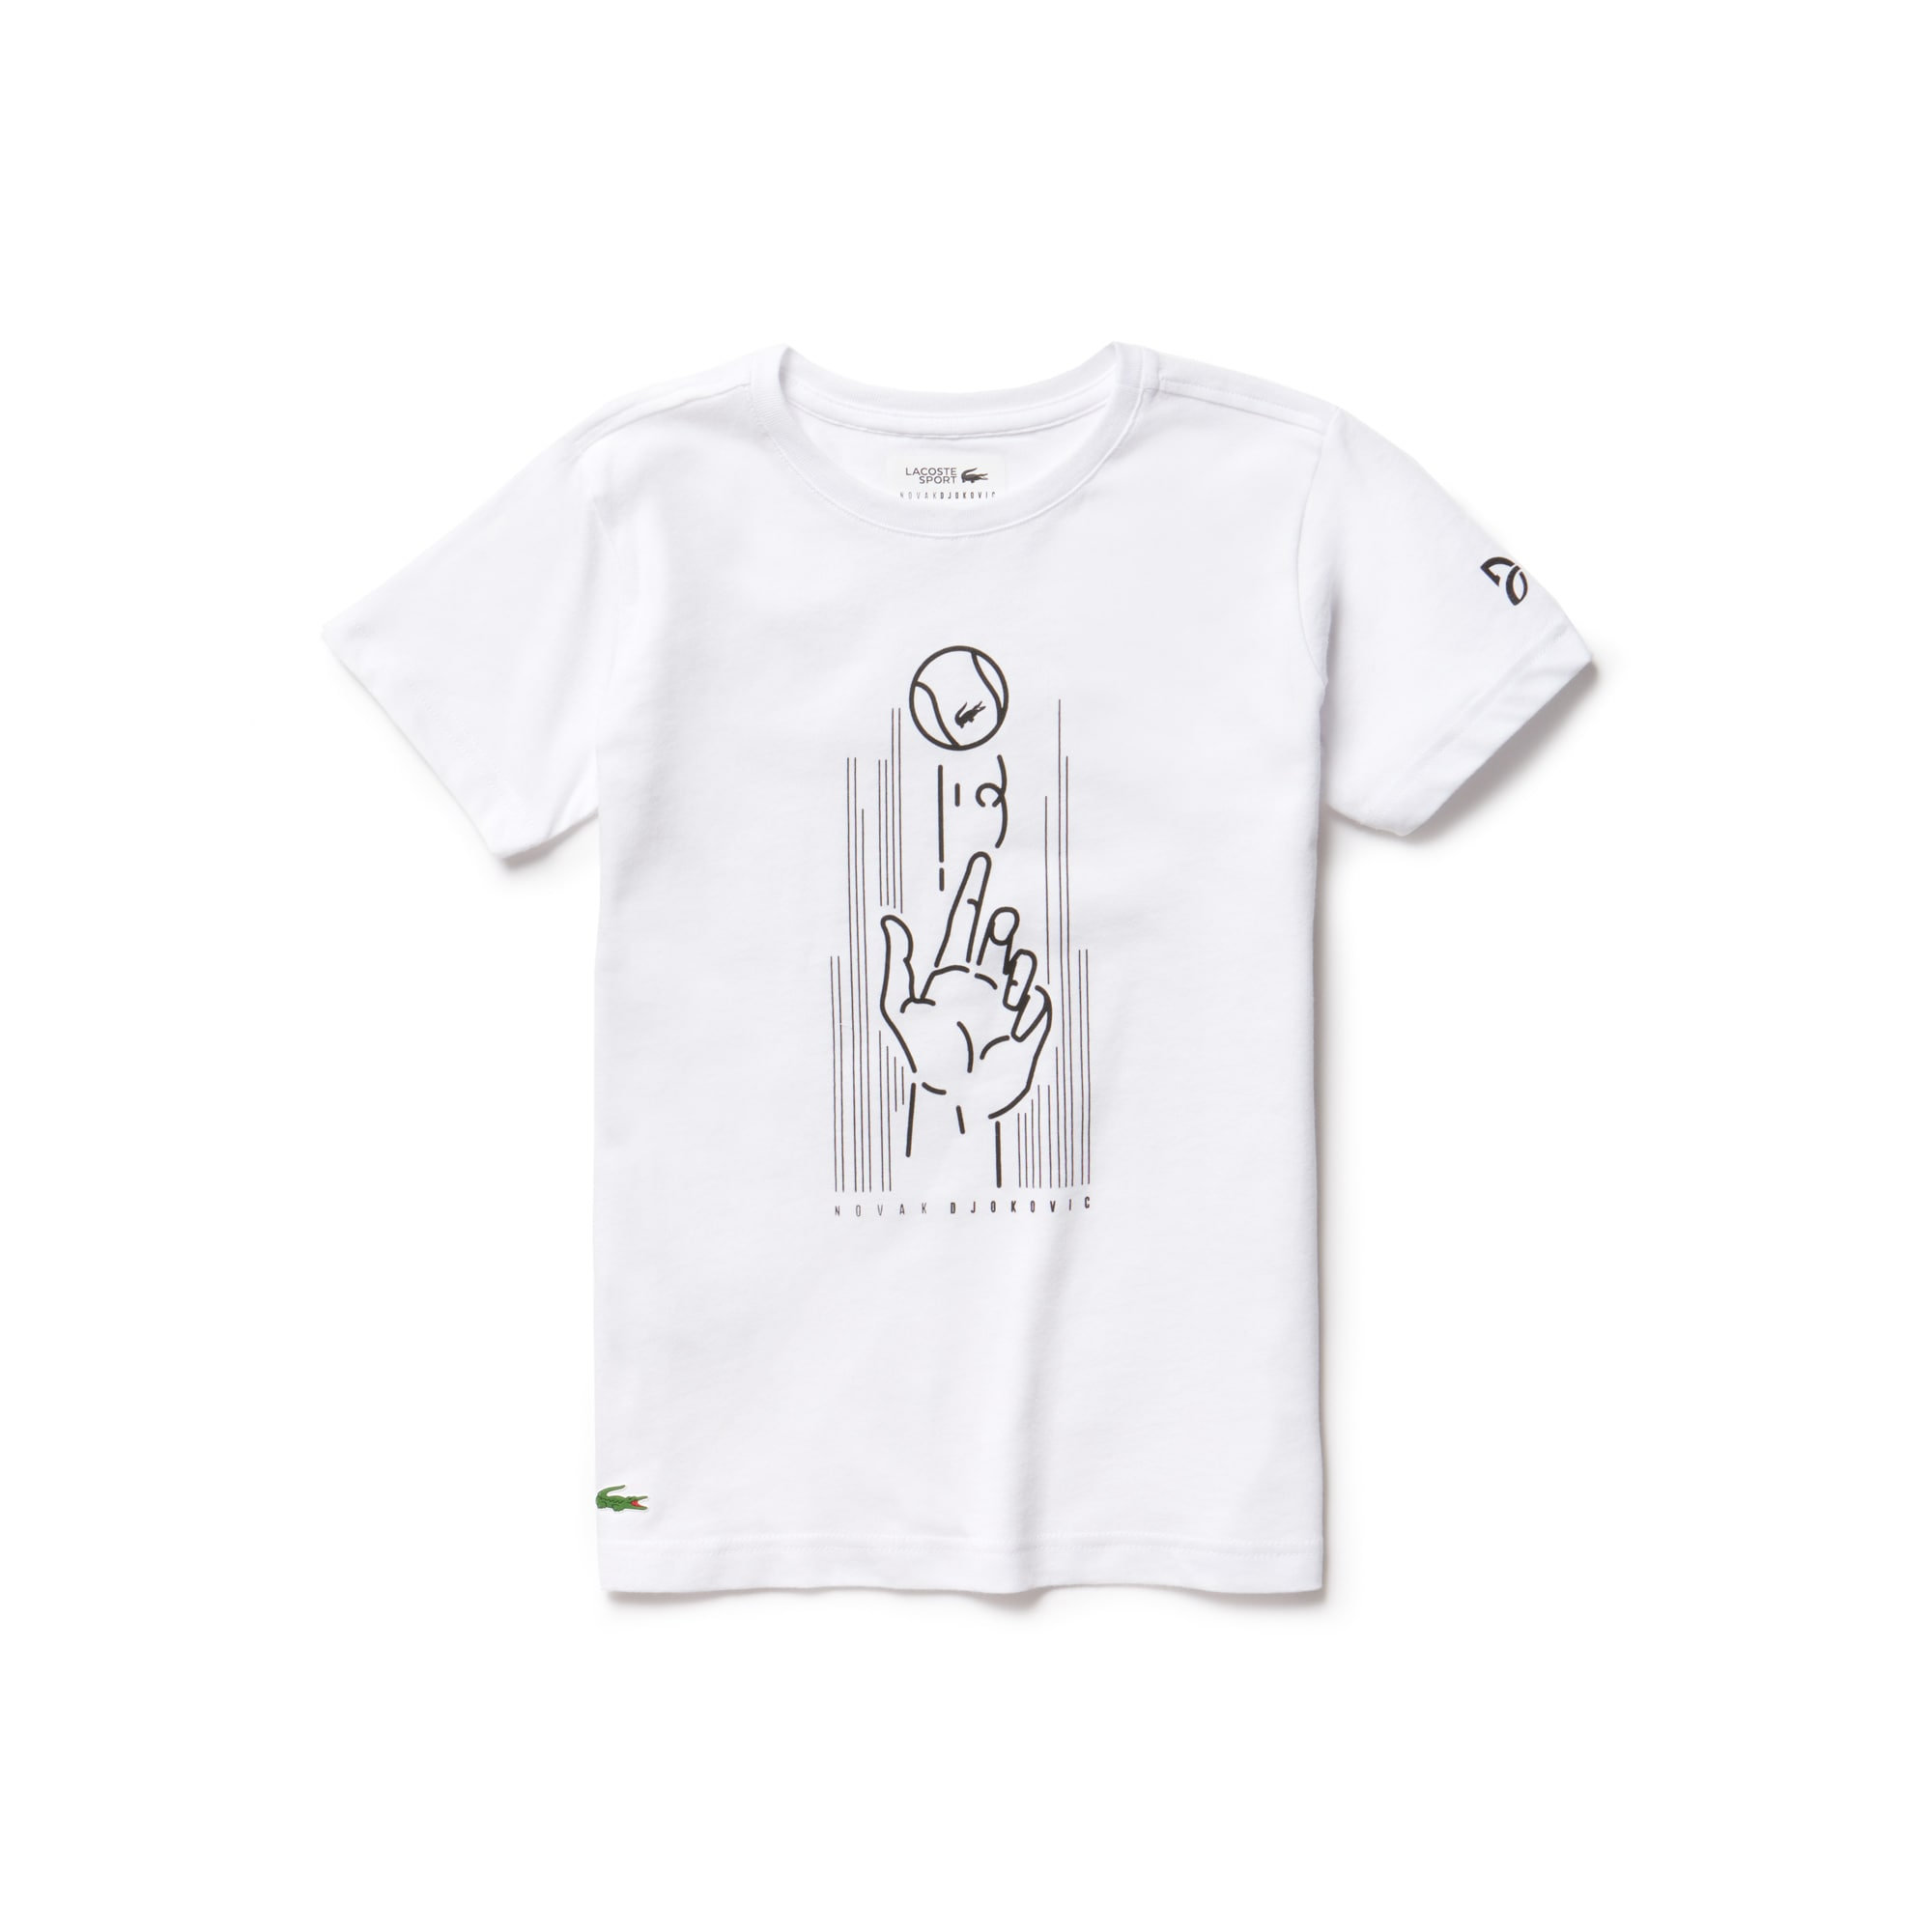 T-shirt Bambino Lacoste SPORT Collezione Novak Djokovic Support With Style - Off Court in jersey tecnico con stampa